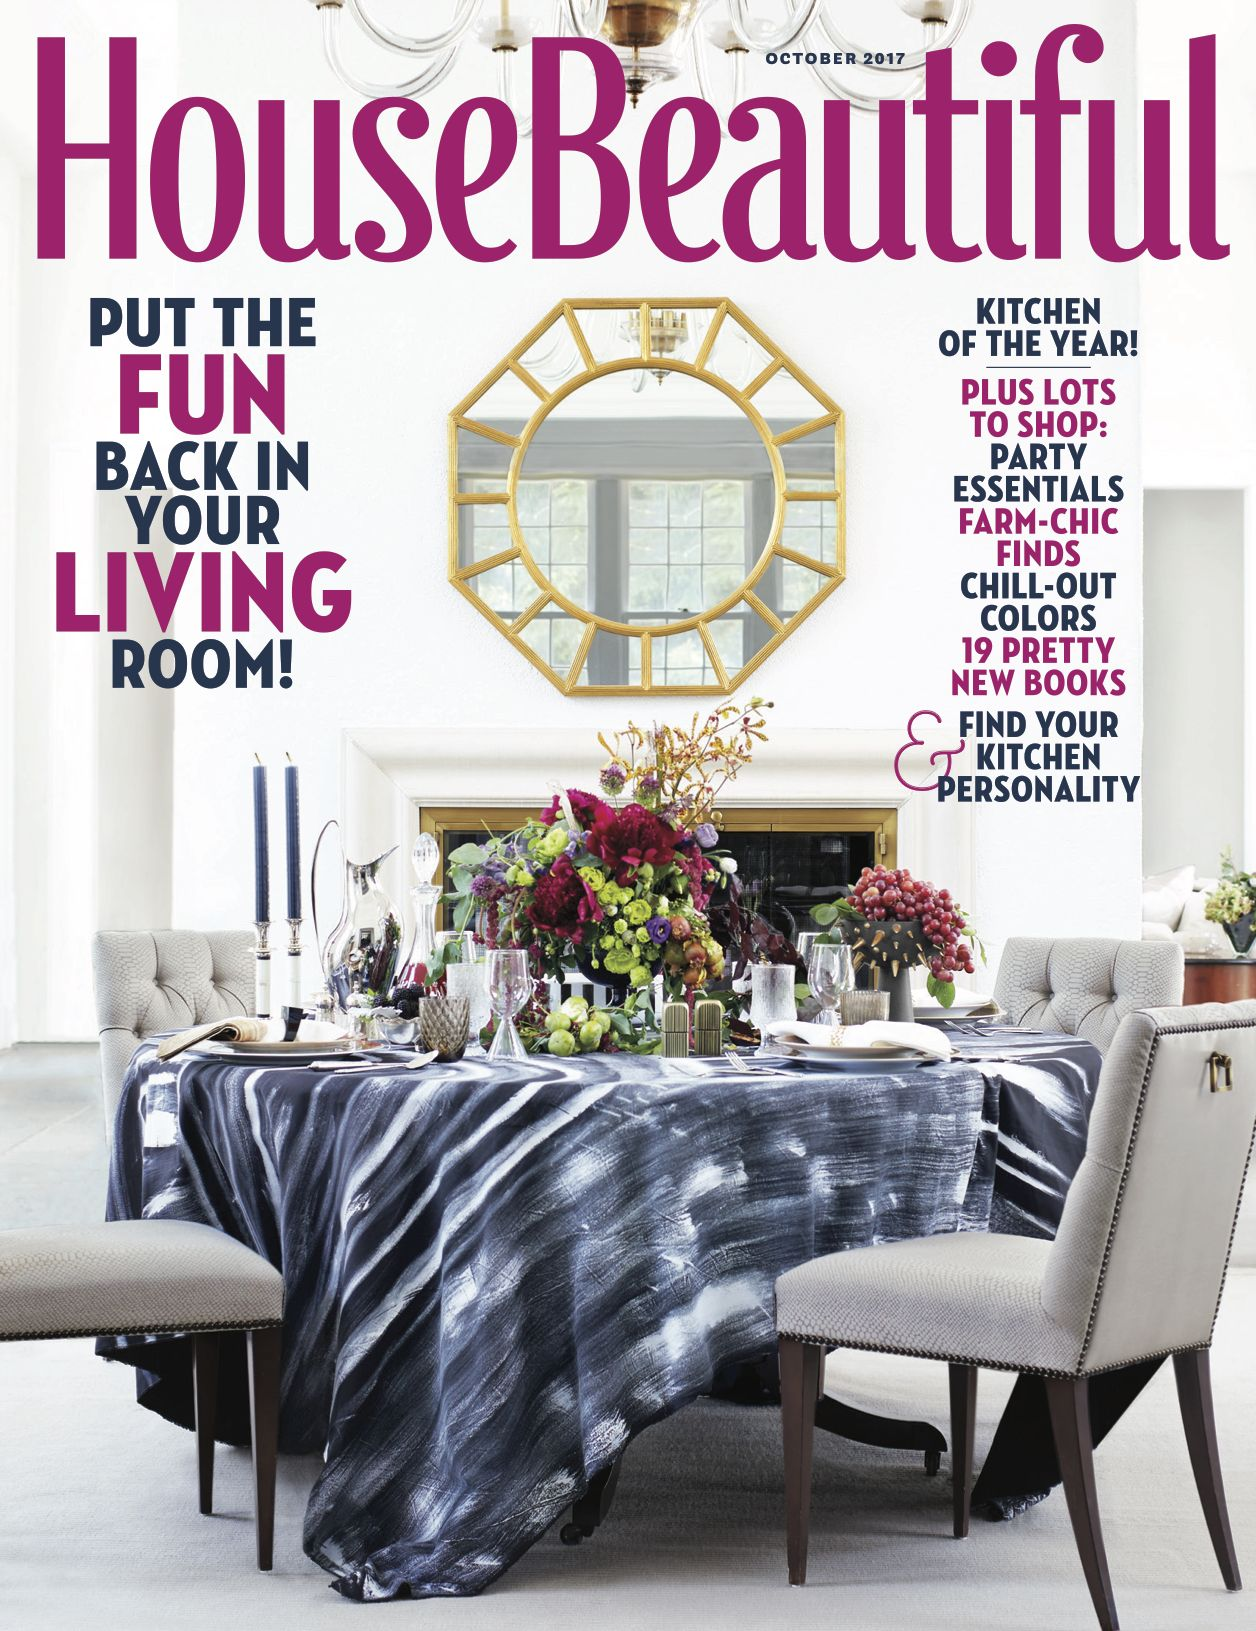 House Beautiful November 2016 Resources - Shopping Information and Product Guide